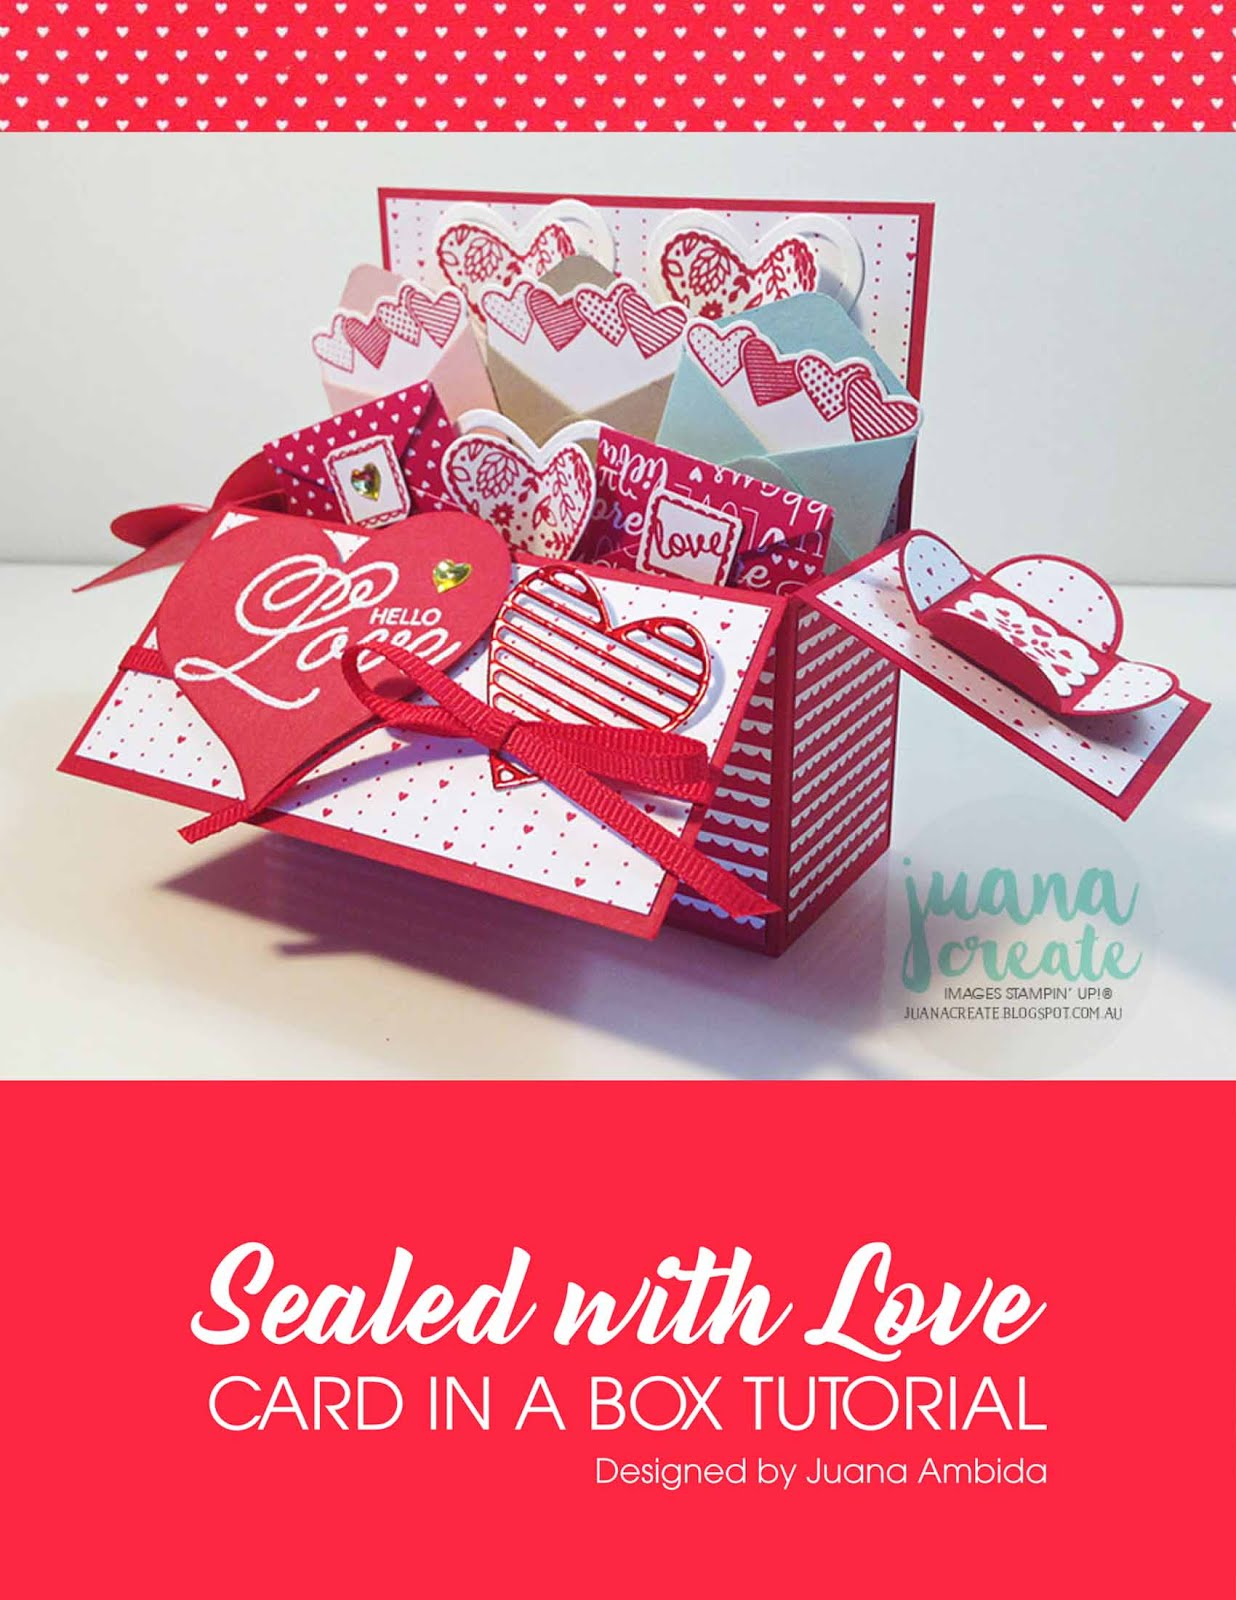 Sealed With Love Card in a Box Tutorial